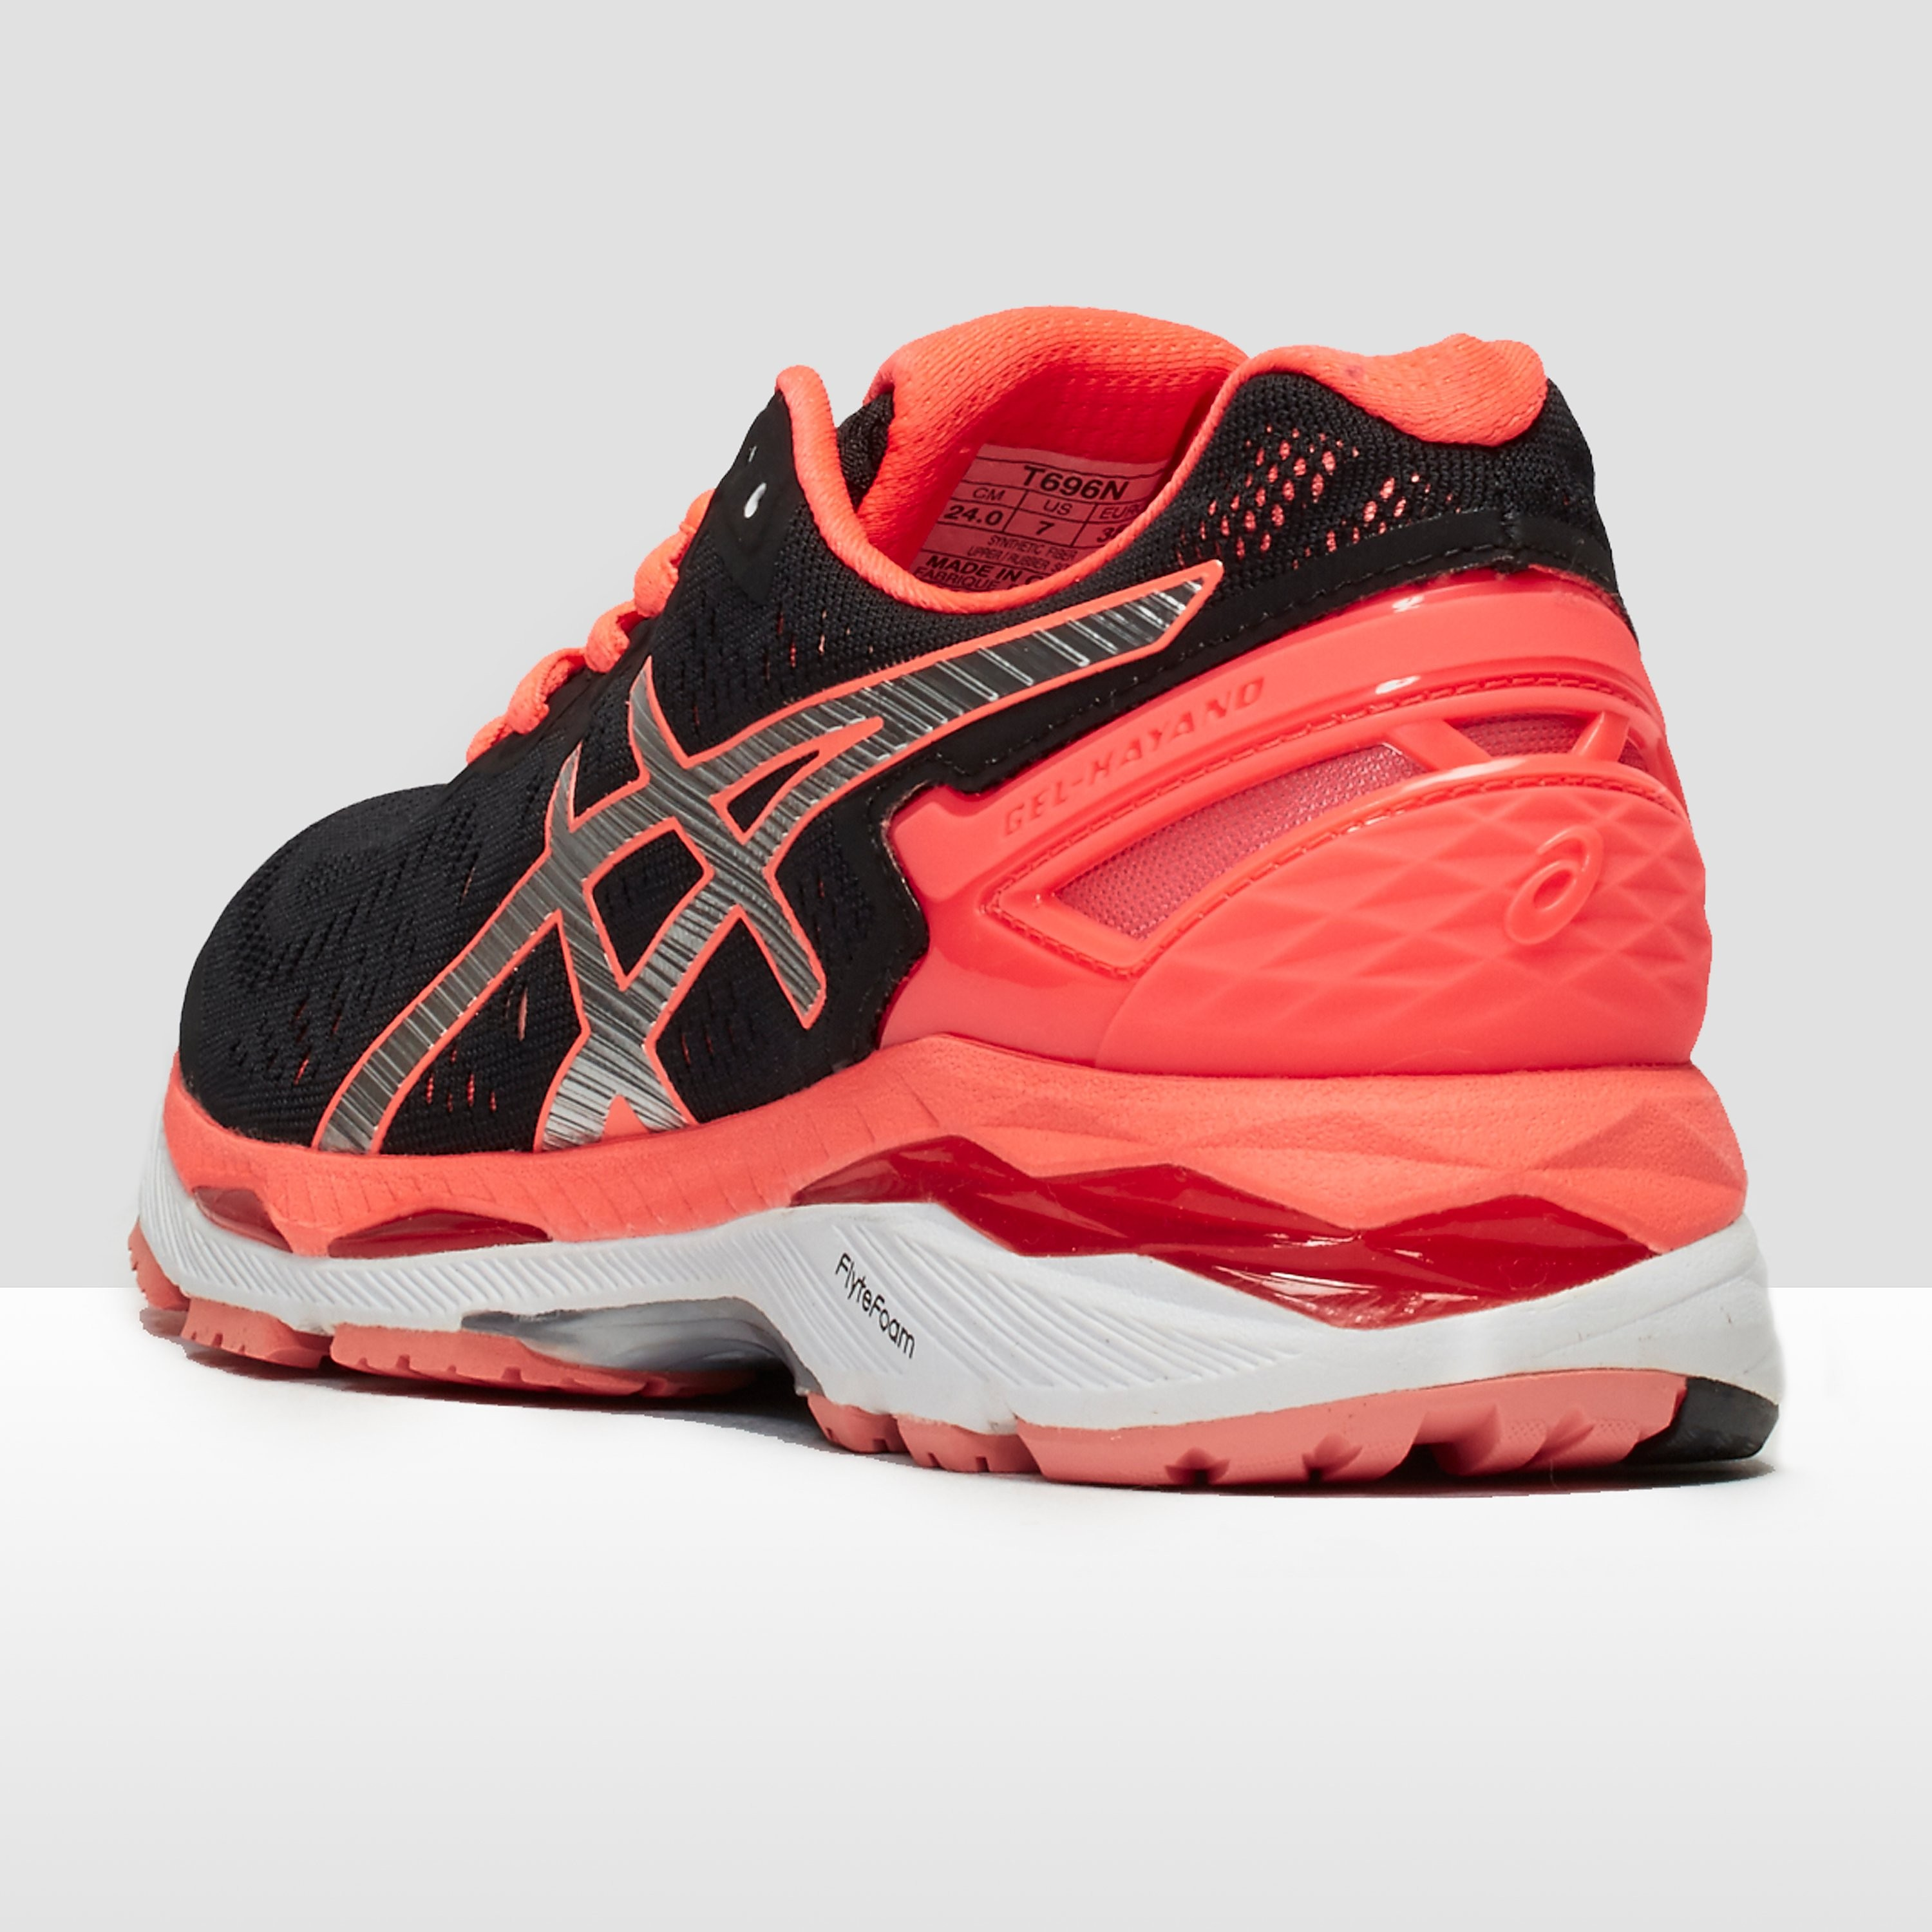 ASICS Gel-Kayano 23 Women's Running Shoe